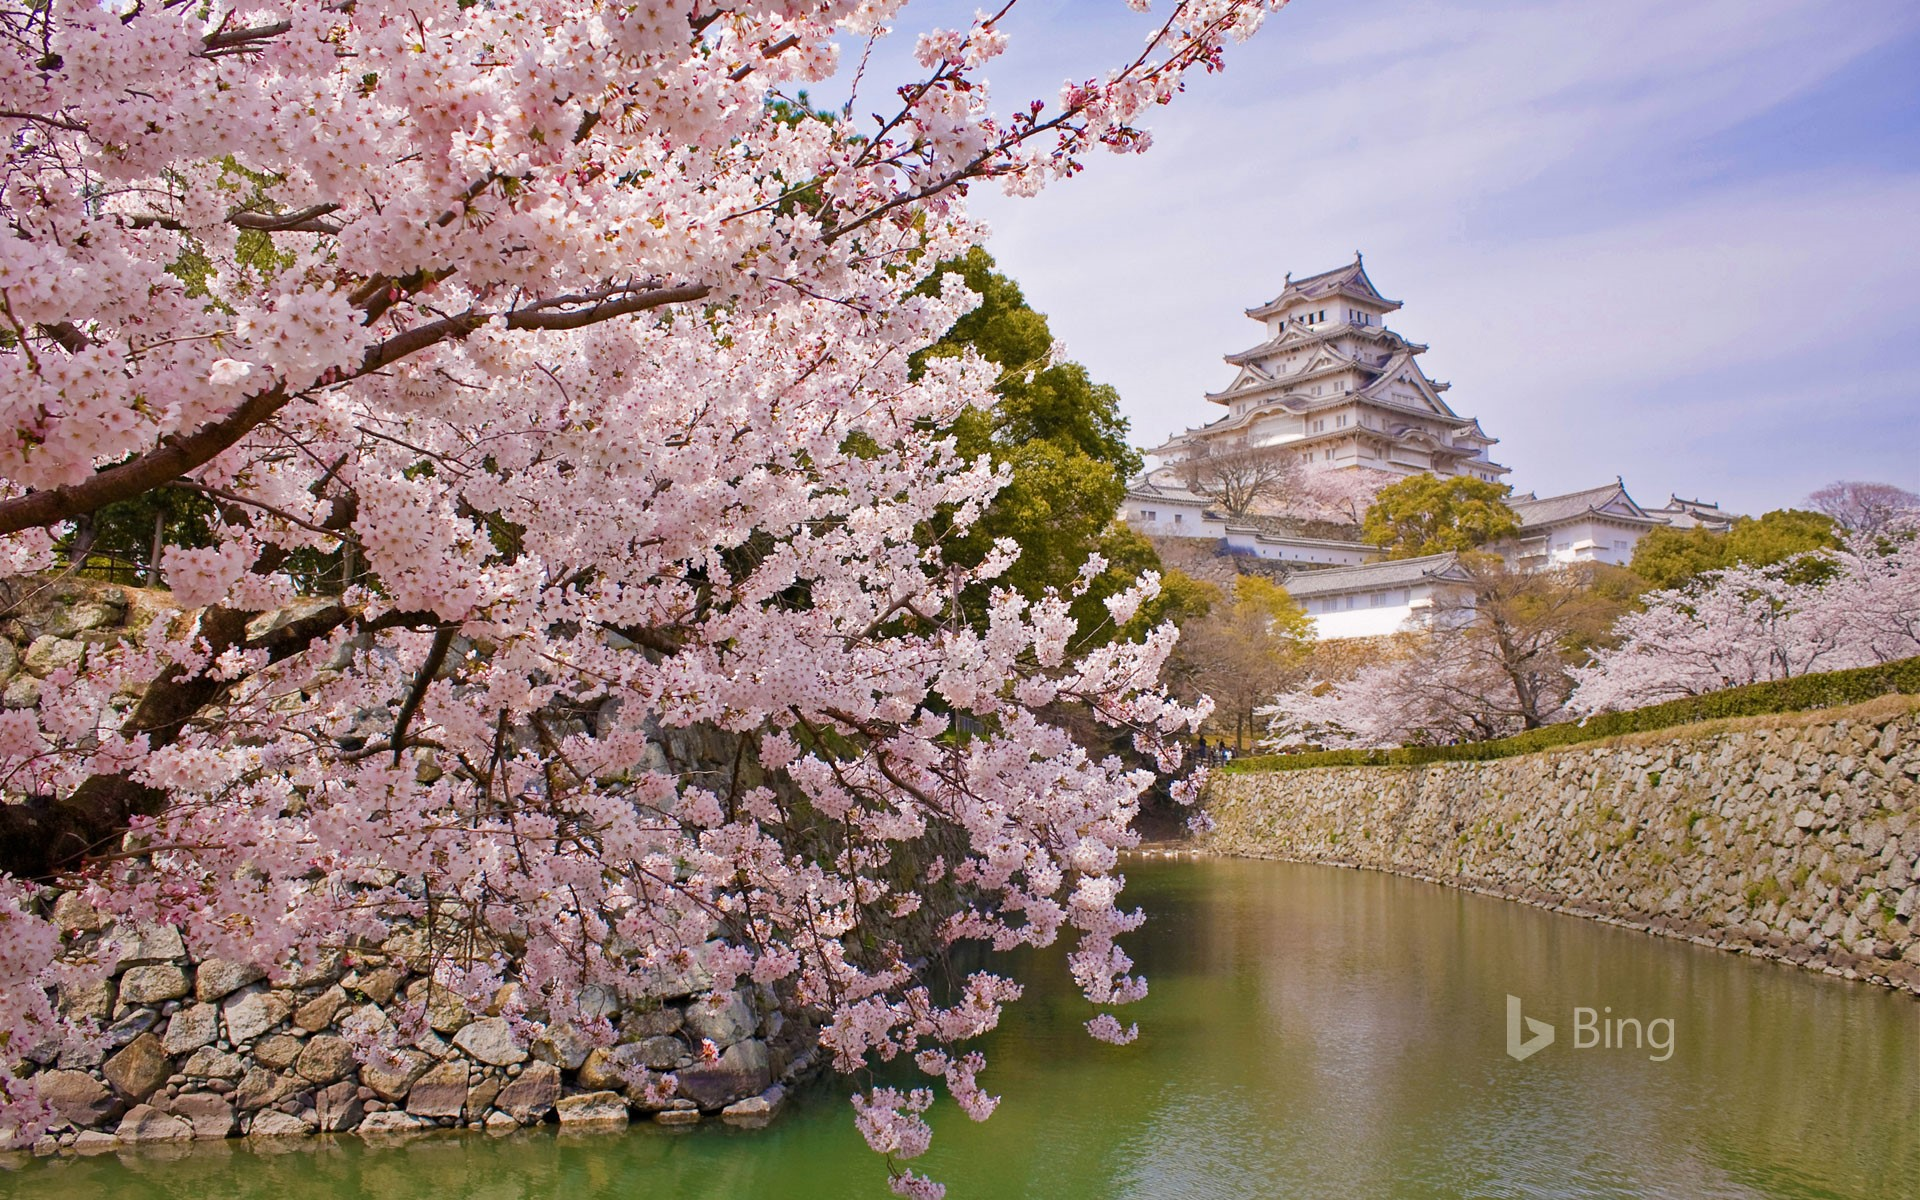 Cherry blossoms and Himeji Castle in Himeji, Japan